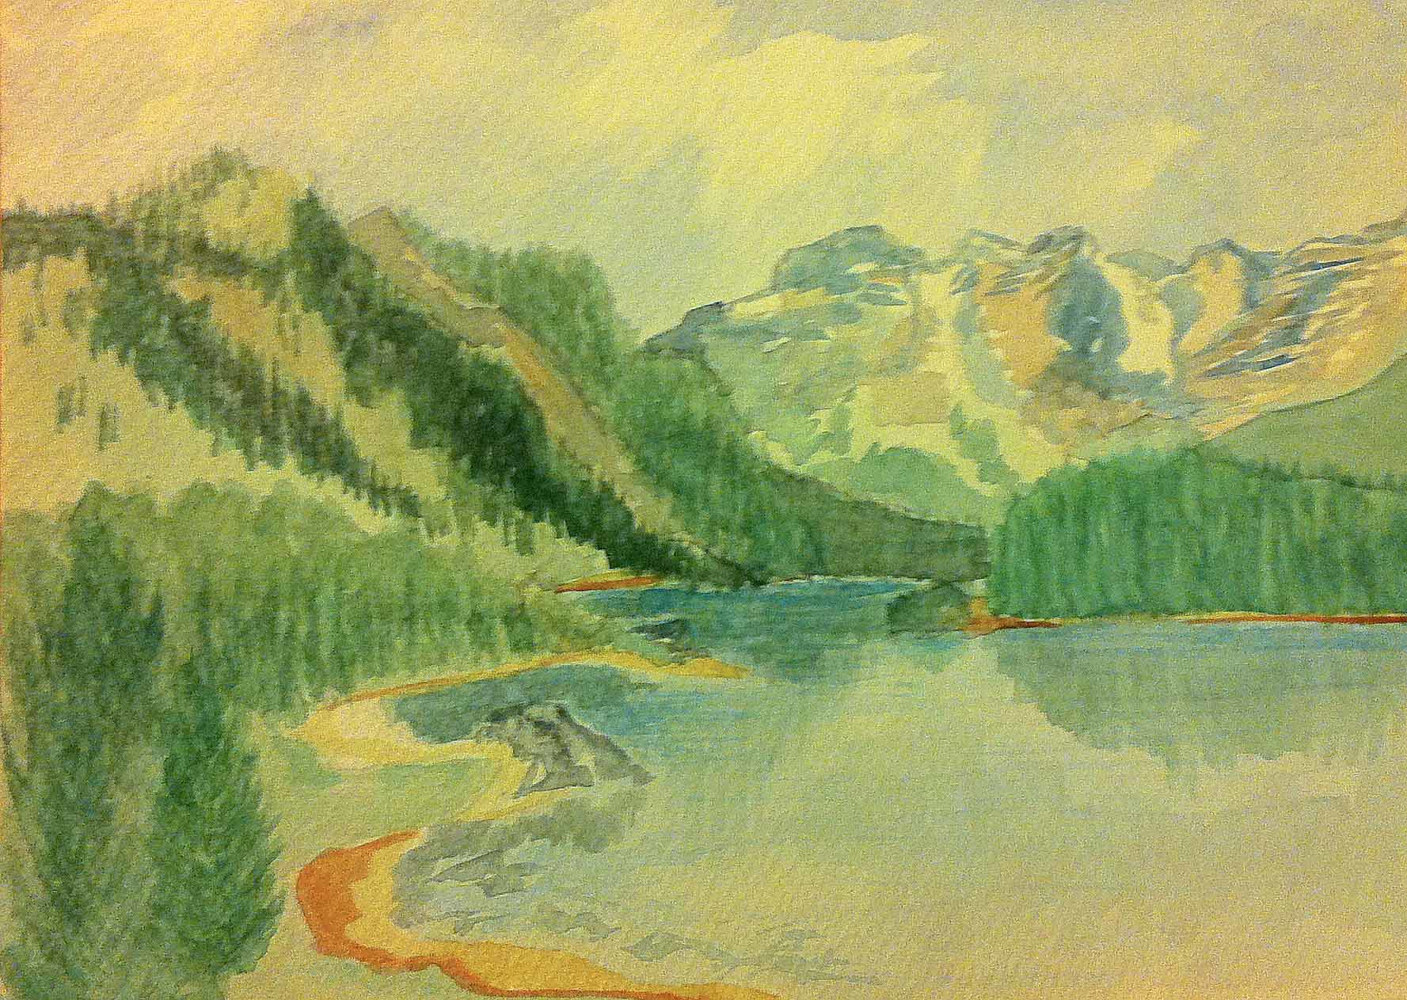 Watercolor COLORADO MOUNTAIN LAKE by Anastasia O'melveny